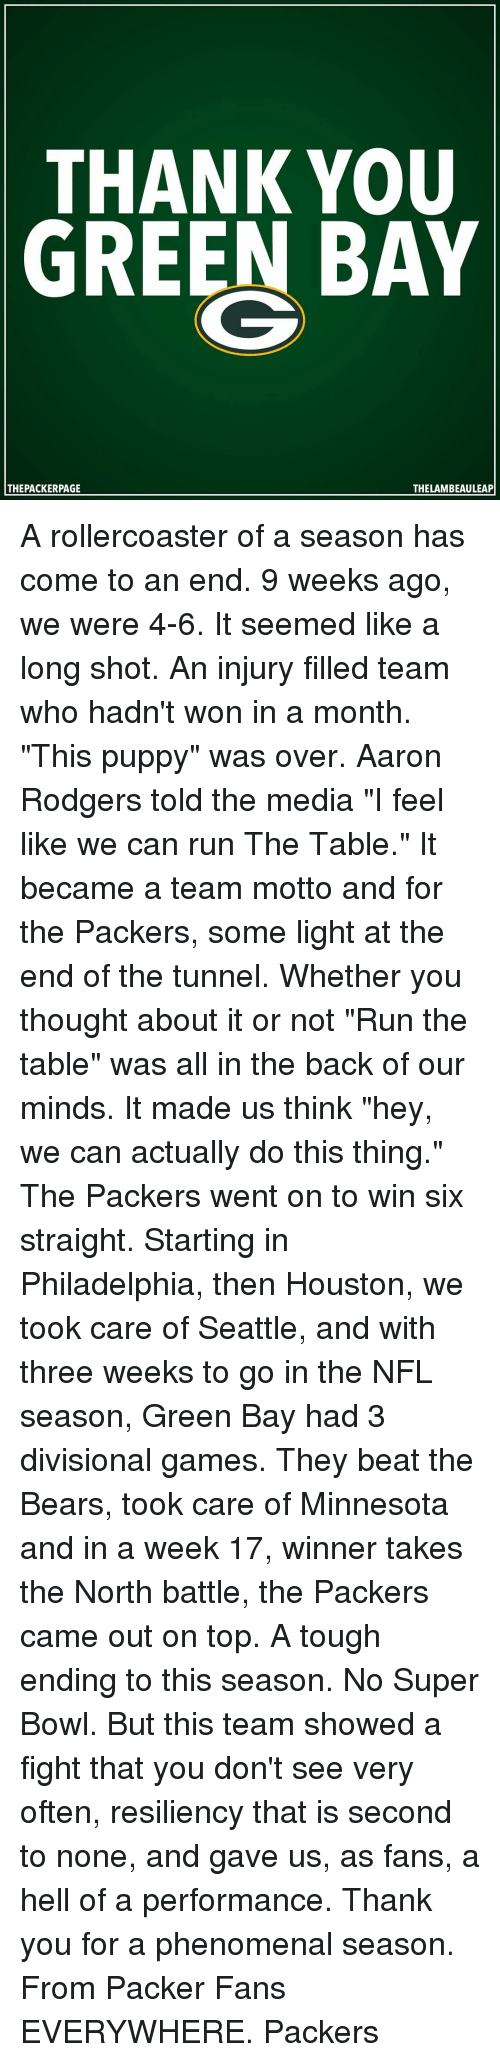 """Aaron Rodgers, Memes, and Phenomenal: THANK YOU  GREEN BAY  THE PACKERPAGE  THELAMBEAULEAP A rollercoaster of a season has come to an end. 9 weeks ago, we were 4-6. It seemed like a long shot. An injury filled team who hadn't won in a month. """"This puppy"""" was over. Aaron Rodgers told the media """"I feel like we can run The Table."""" It became a team motto and for the Packers, some light at the end of the tunnel. Whether you thought about it or not """"Run the table"""" was all in the back of our minds. It made us think """"hey, we can actually do this thing."""" The Packers went on to win six straight. Starting in Philadelphia, then Houston, we took care of Seattle, and with three weeks to go in the NFL season, Green Bay had 3 divisional games. They beat the Bears, took care of Minnesota and in a week 17, winner takes the North battle, the Packers came out on top. A tough ending to this season. No Super Bowl. But this team showed a fight that you don't see very often, resiliency that is second to none, and gave us, as fans, a hell of a performance. Thank you for a phenomenal season. From Packer Fans EVERYWHERE. Packers"""